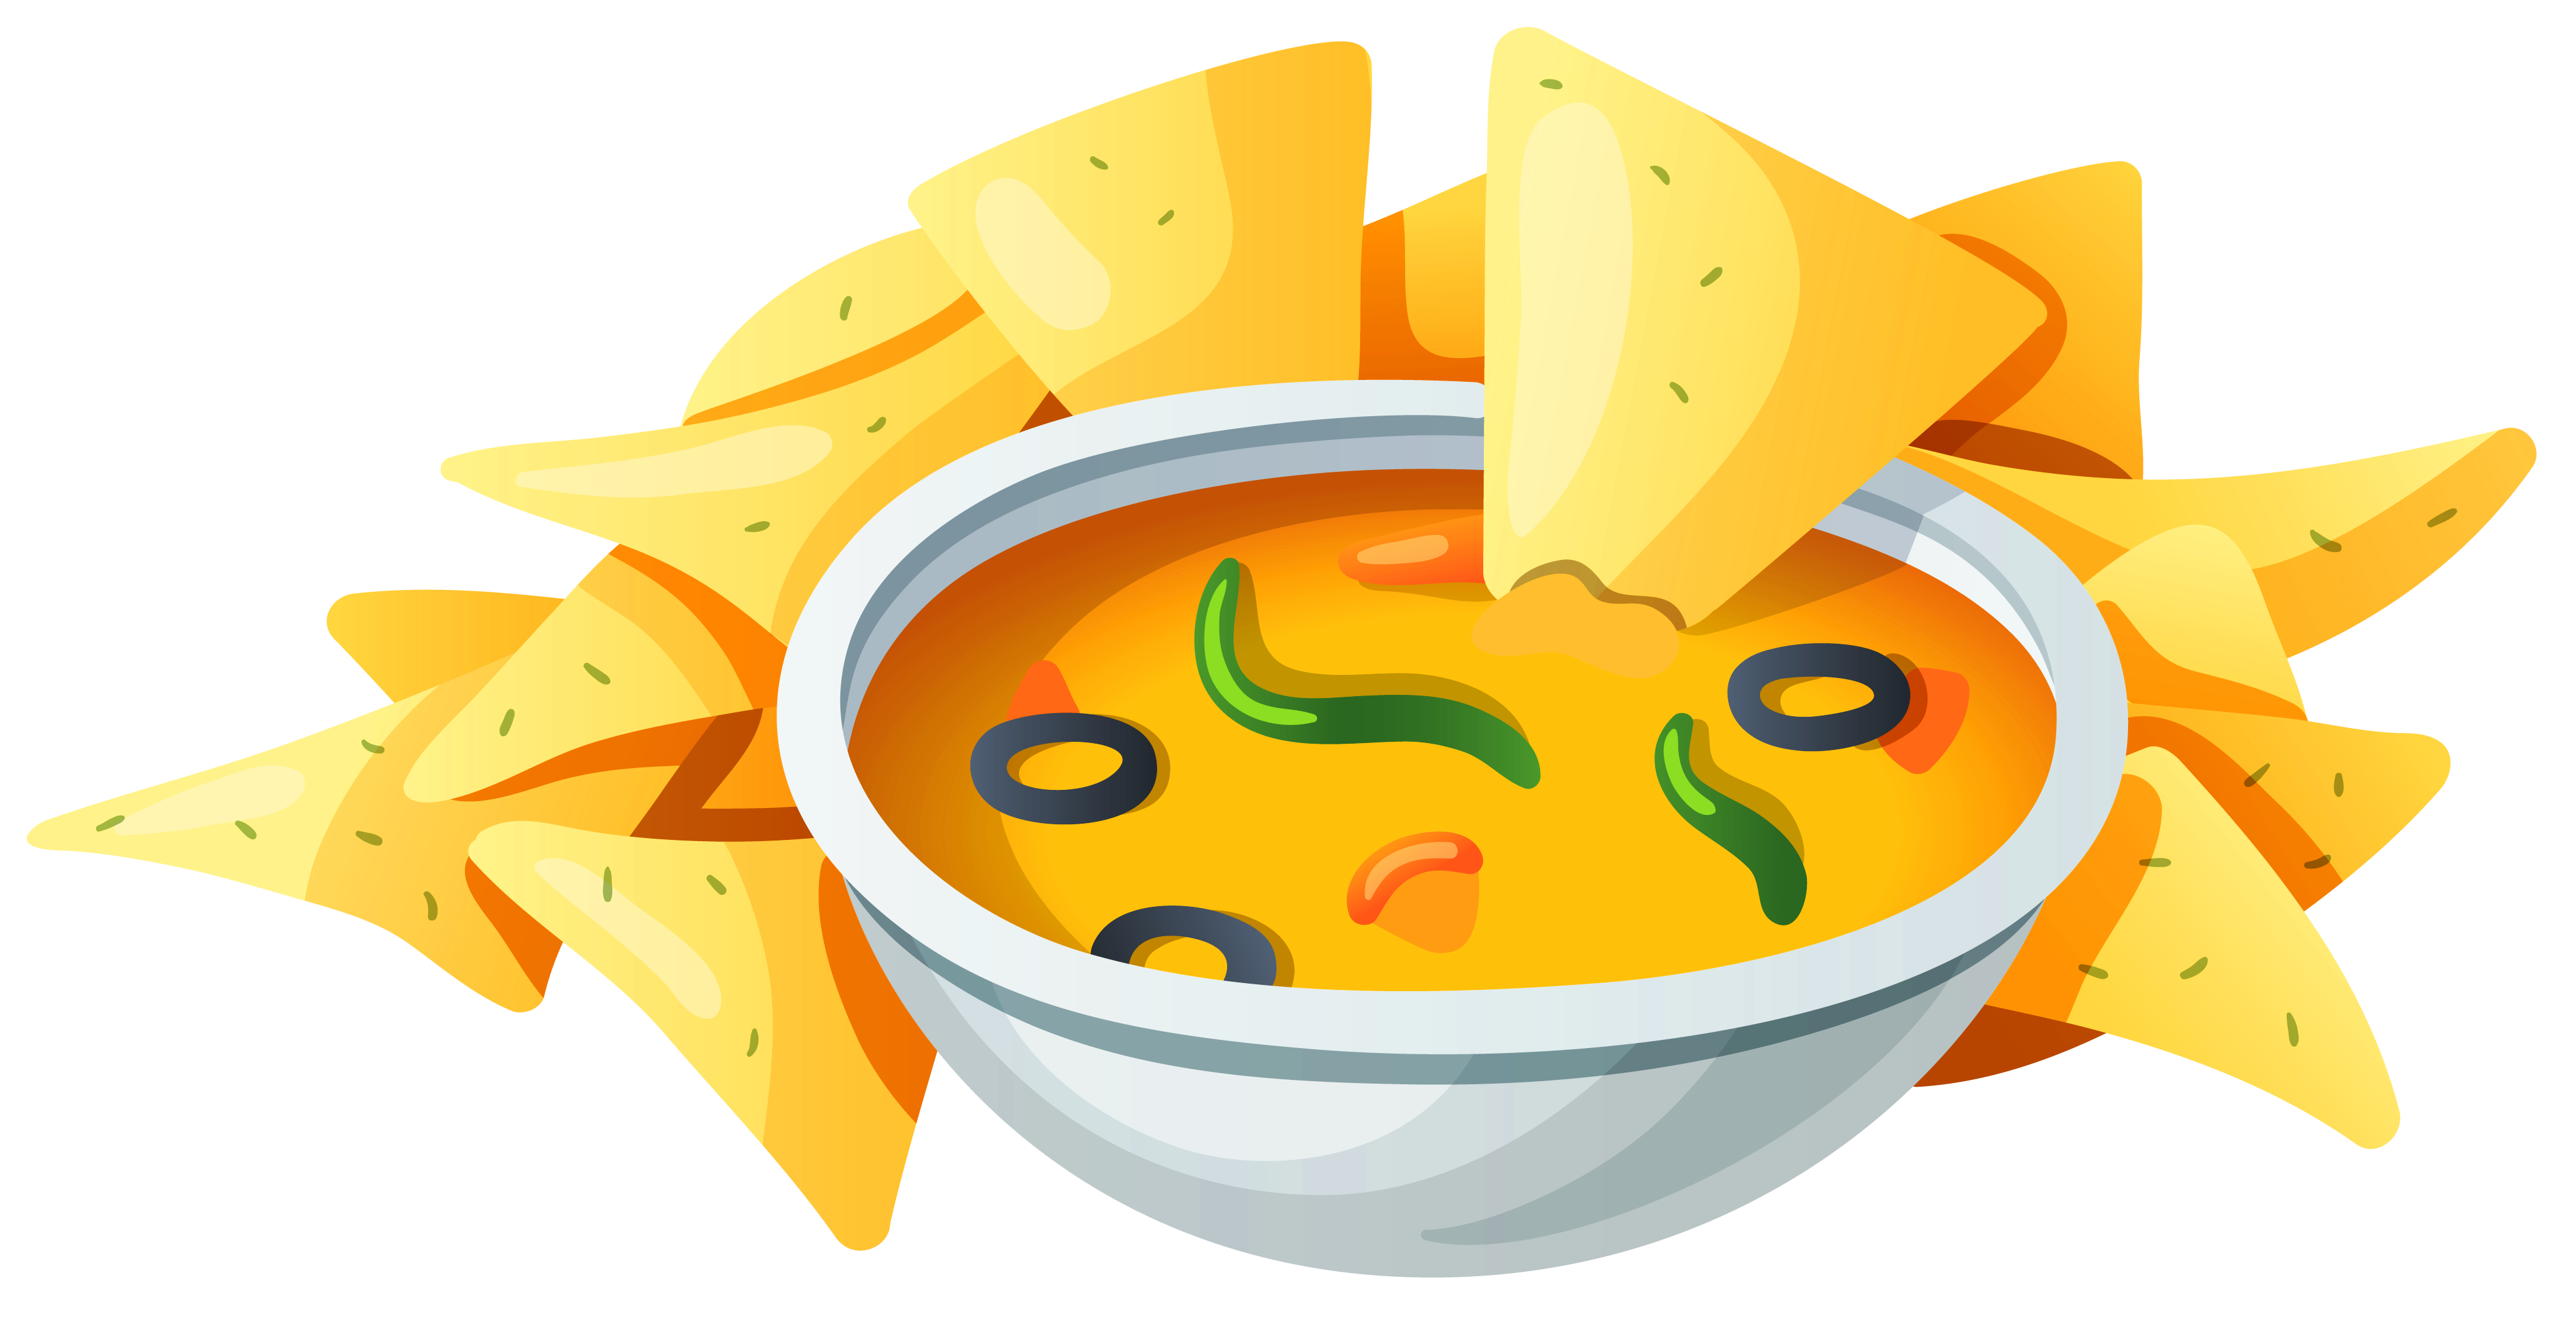 alt=No background clipart mexican food title=No background